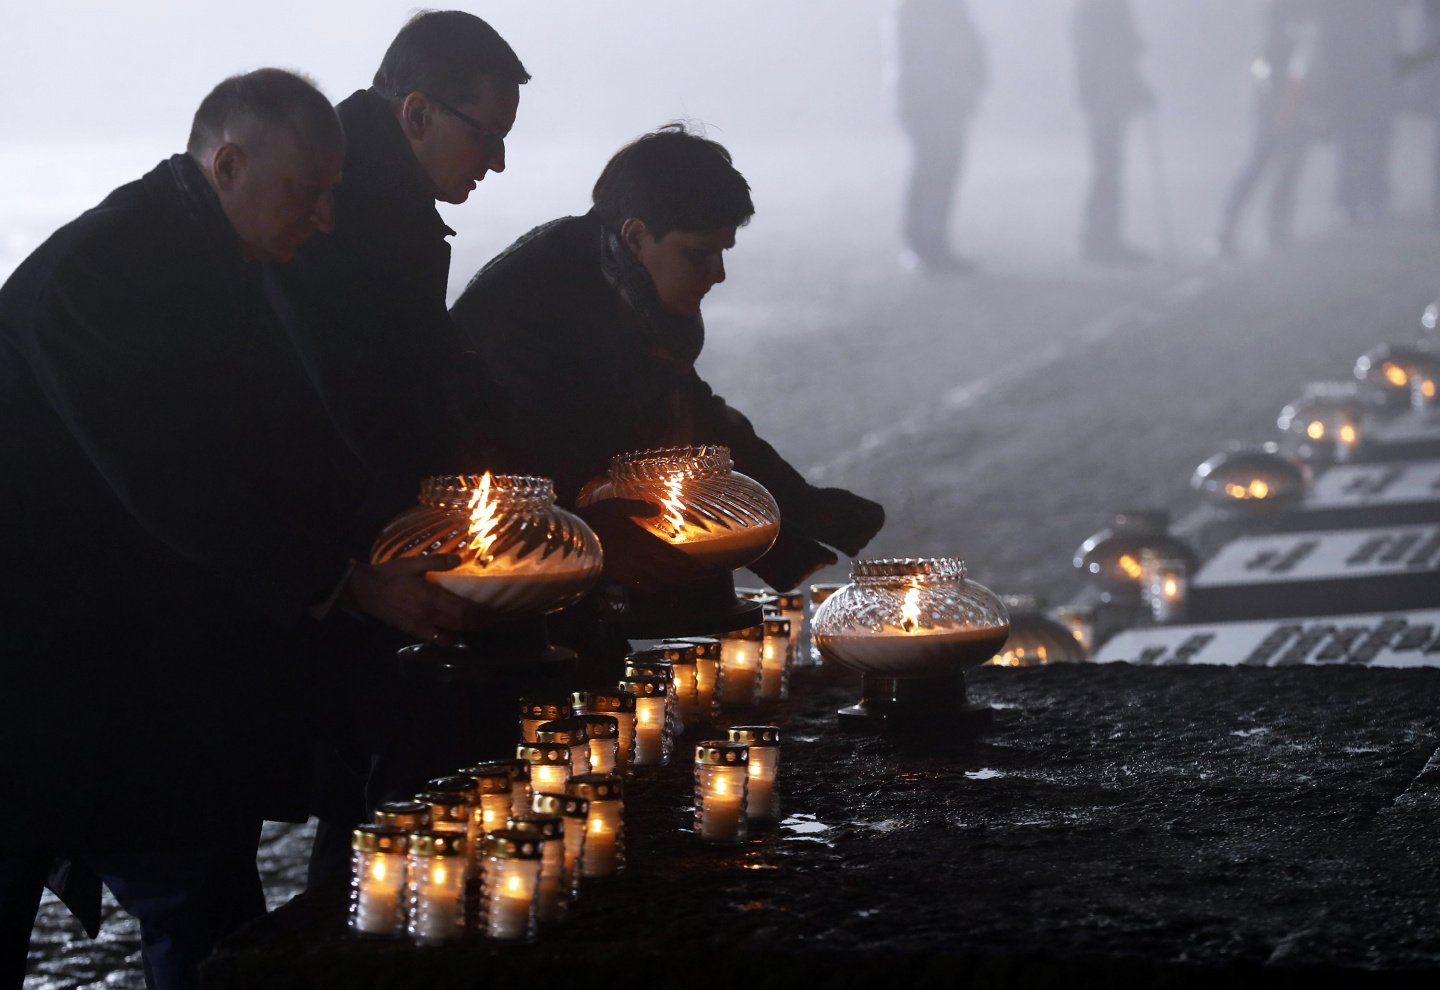 Polish ambassador: Why the Holocaust law is justified